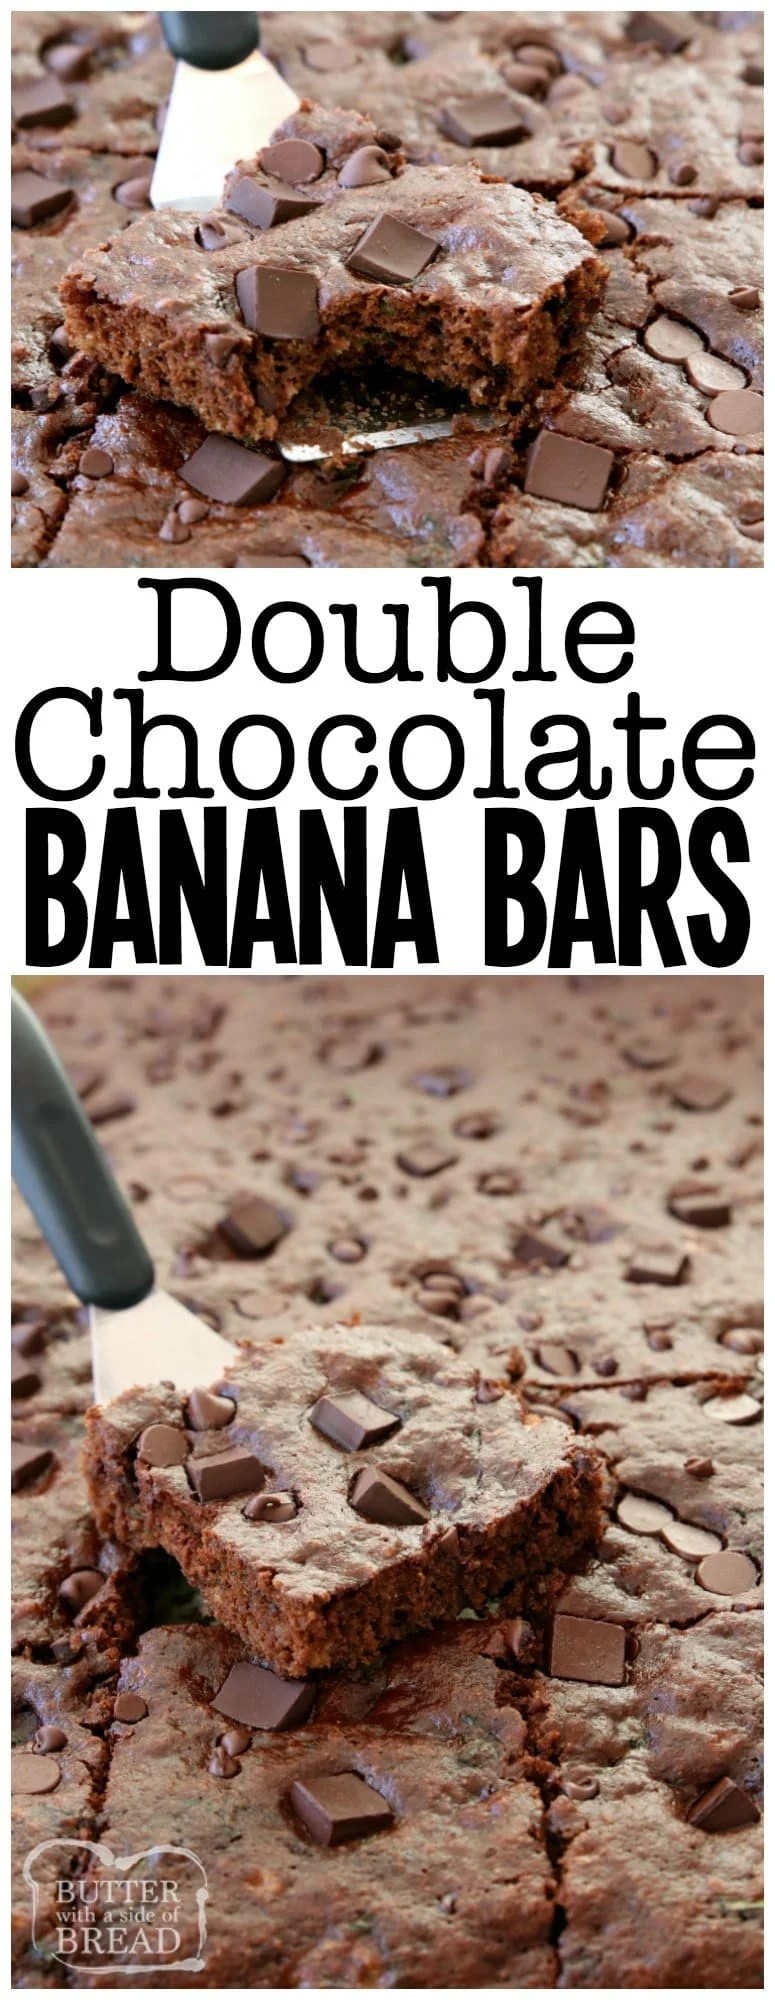 Double Chocolate Banana Bars made with 5 bananas & double the chocolate for a tasty banana recipe that everyone enjoys. Not too sweet & perfect anytime!